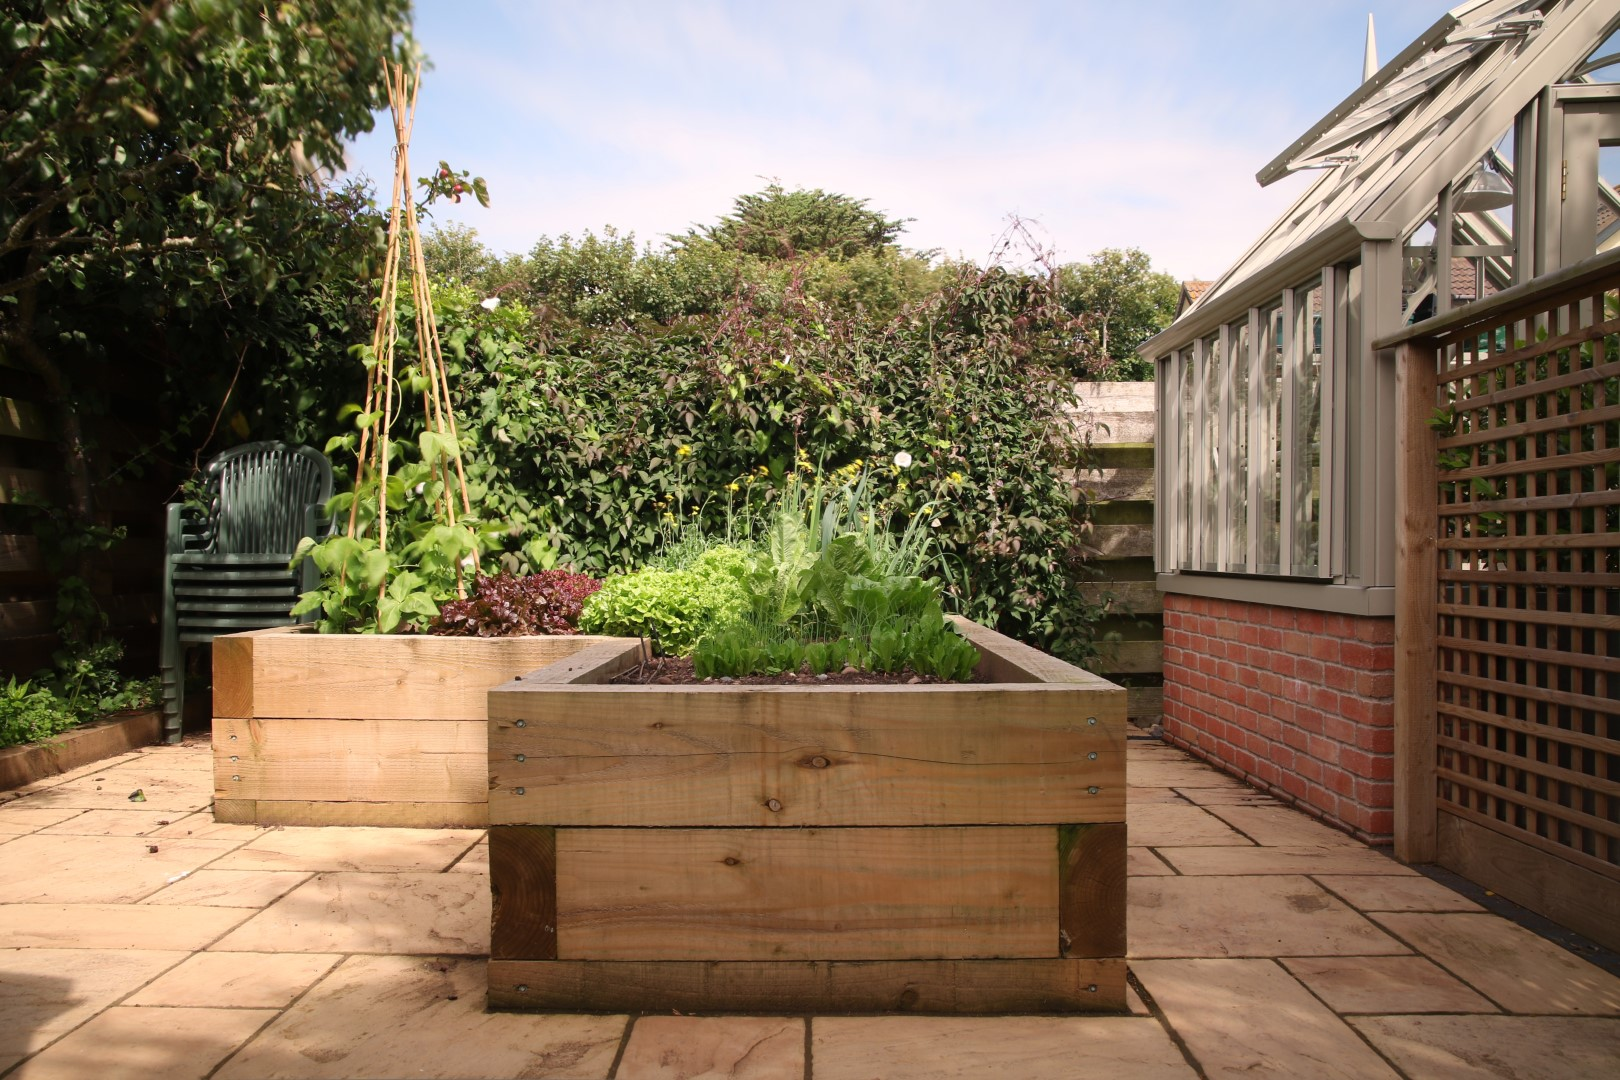 Timber raised vegetable bed